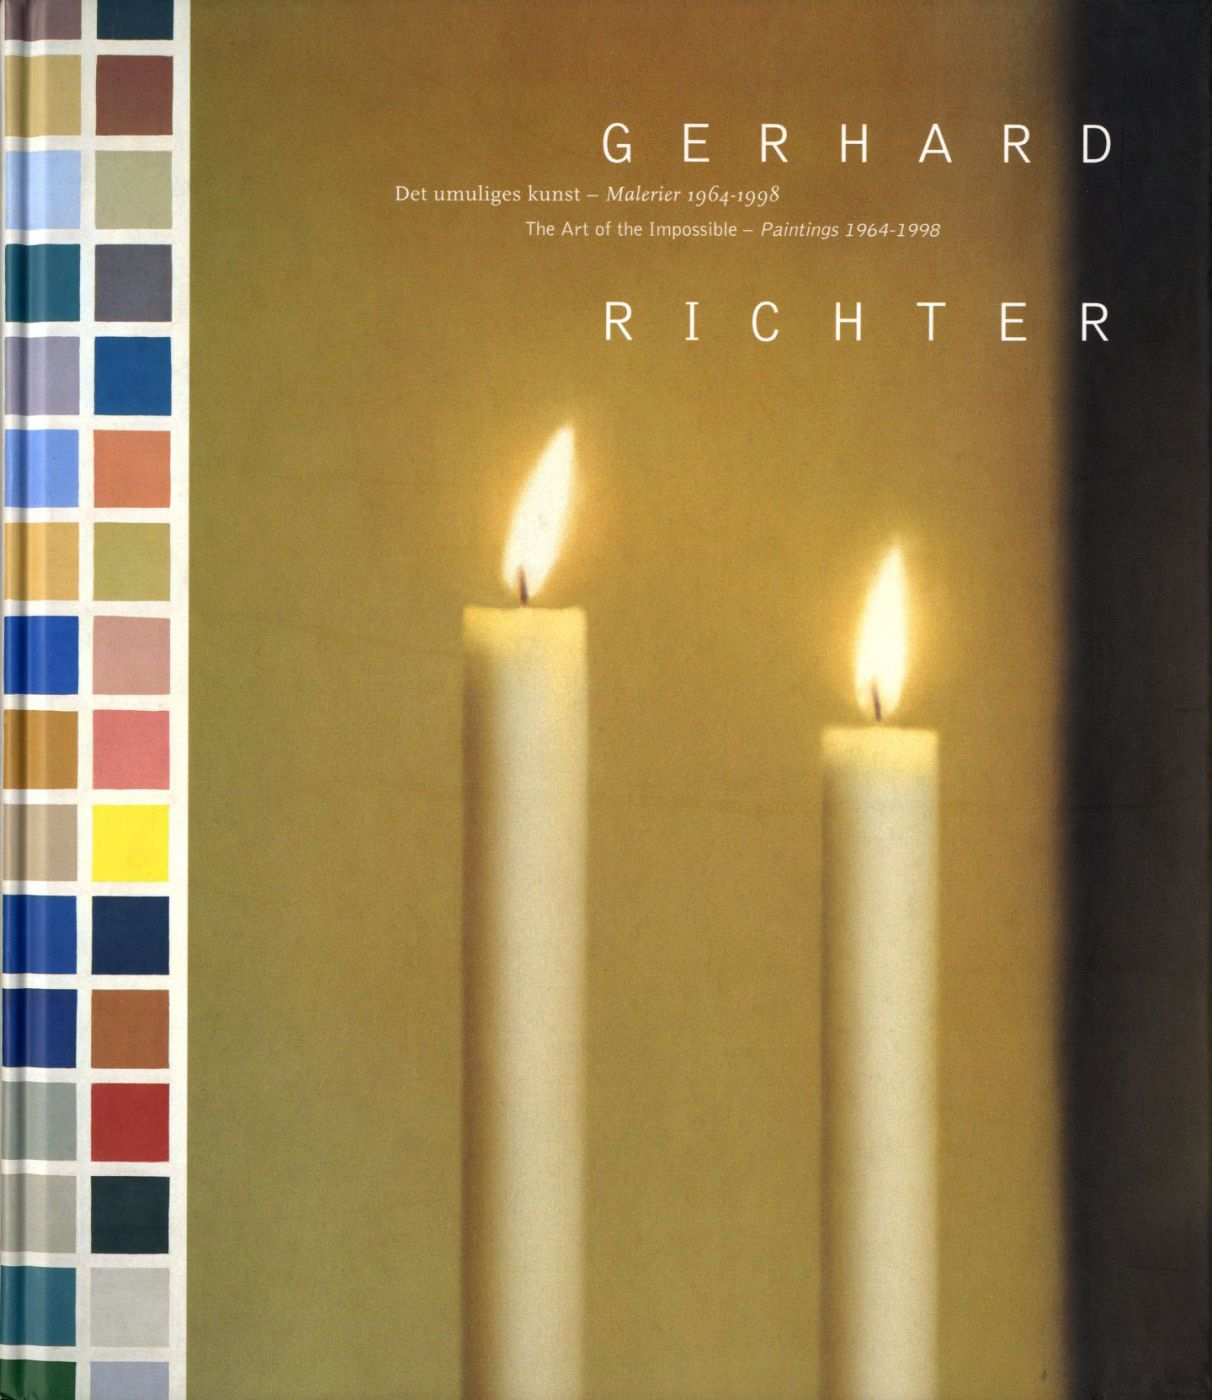 Gerhard Richter: The Art of the Impossible - Paintings 1964-1998